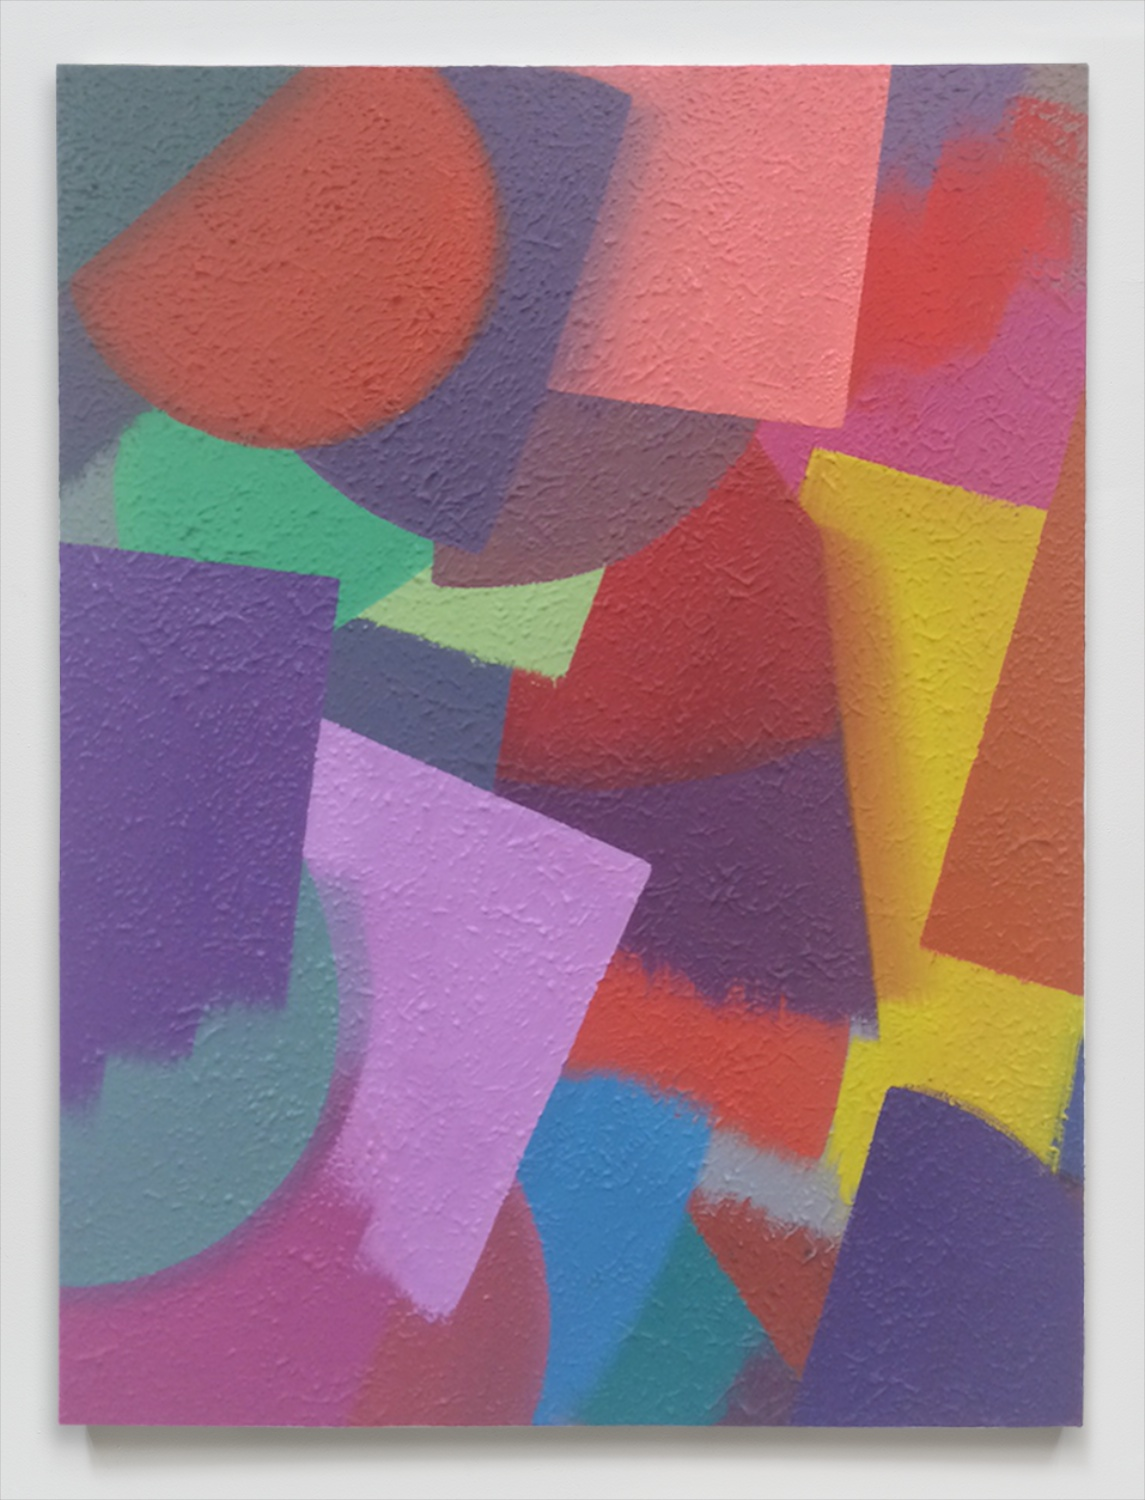 Alex Olson  For the Cyclops (4)  2014 Oil and modeling paste on linen 24h x 18w in AO159